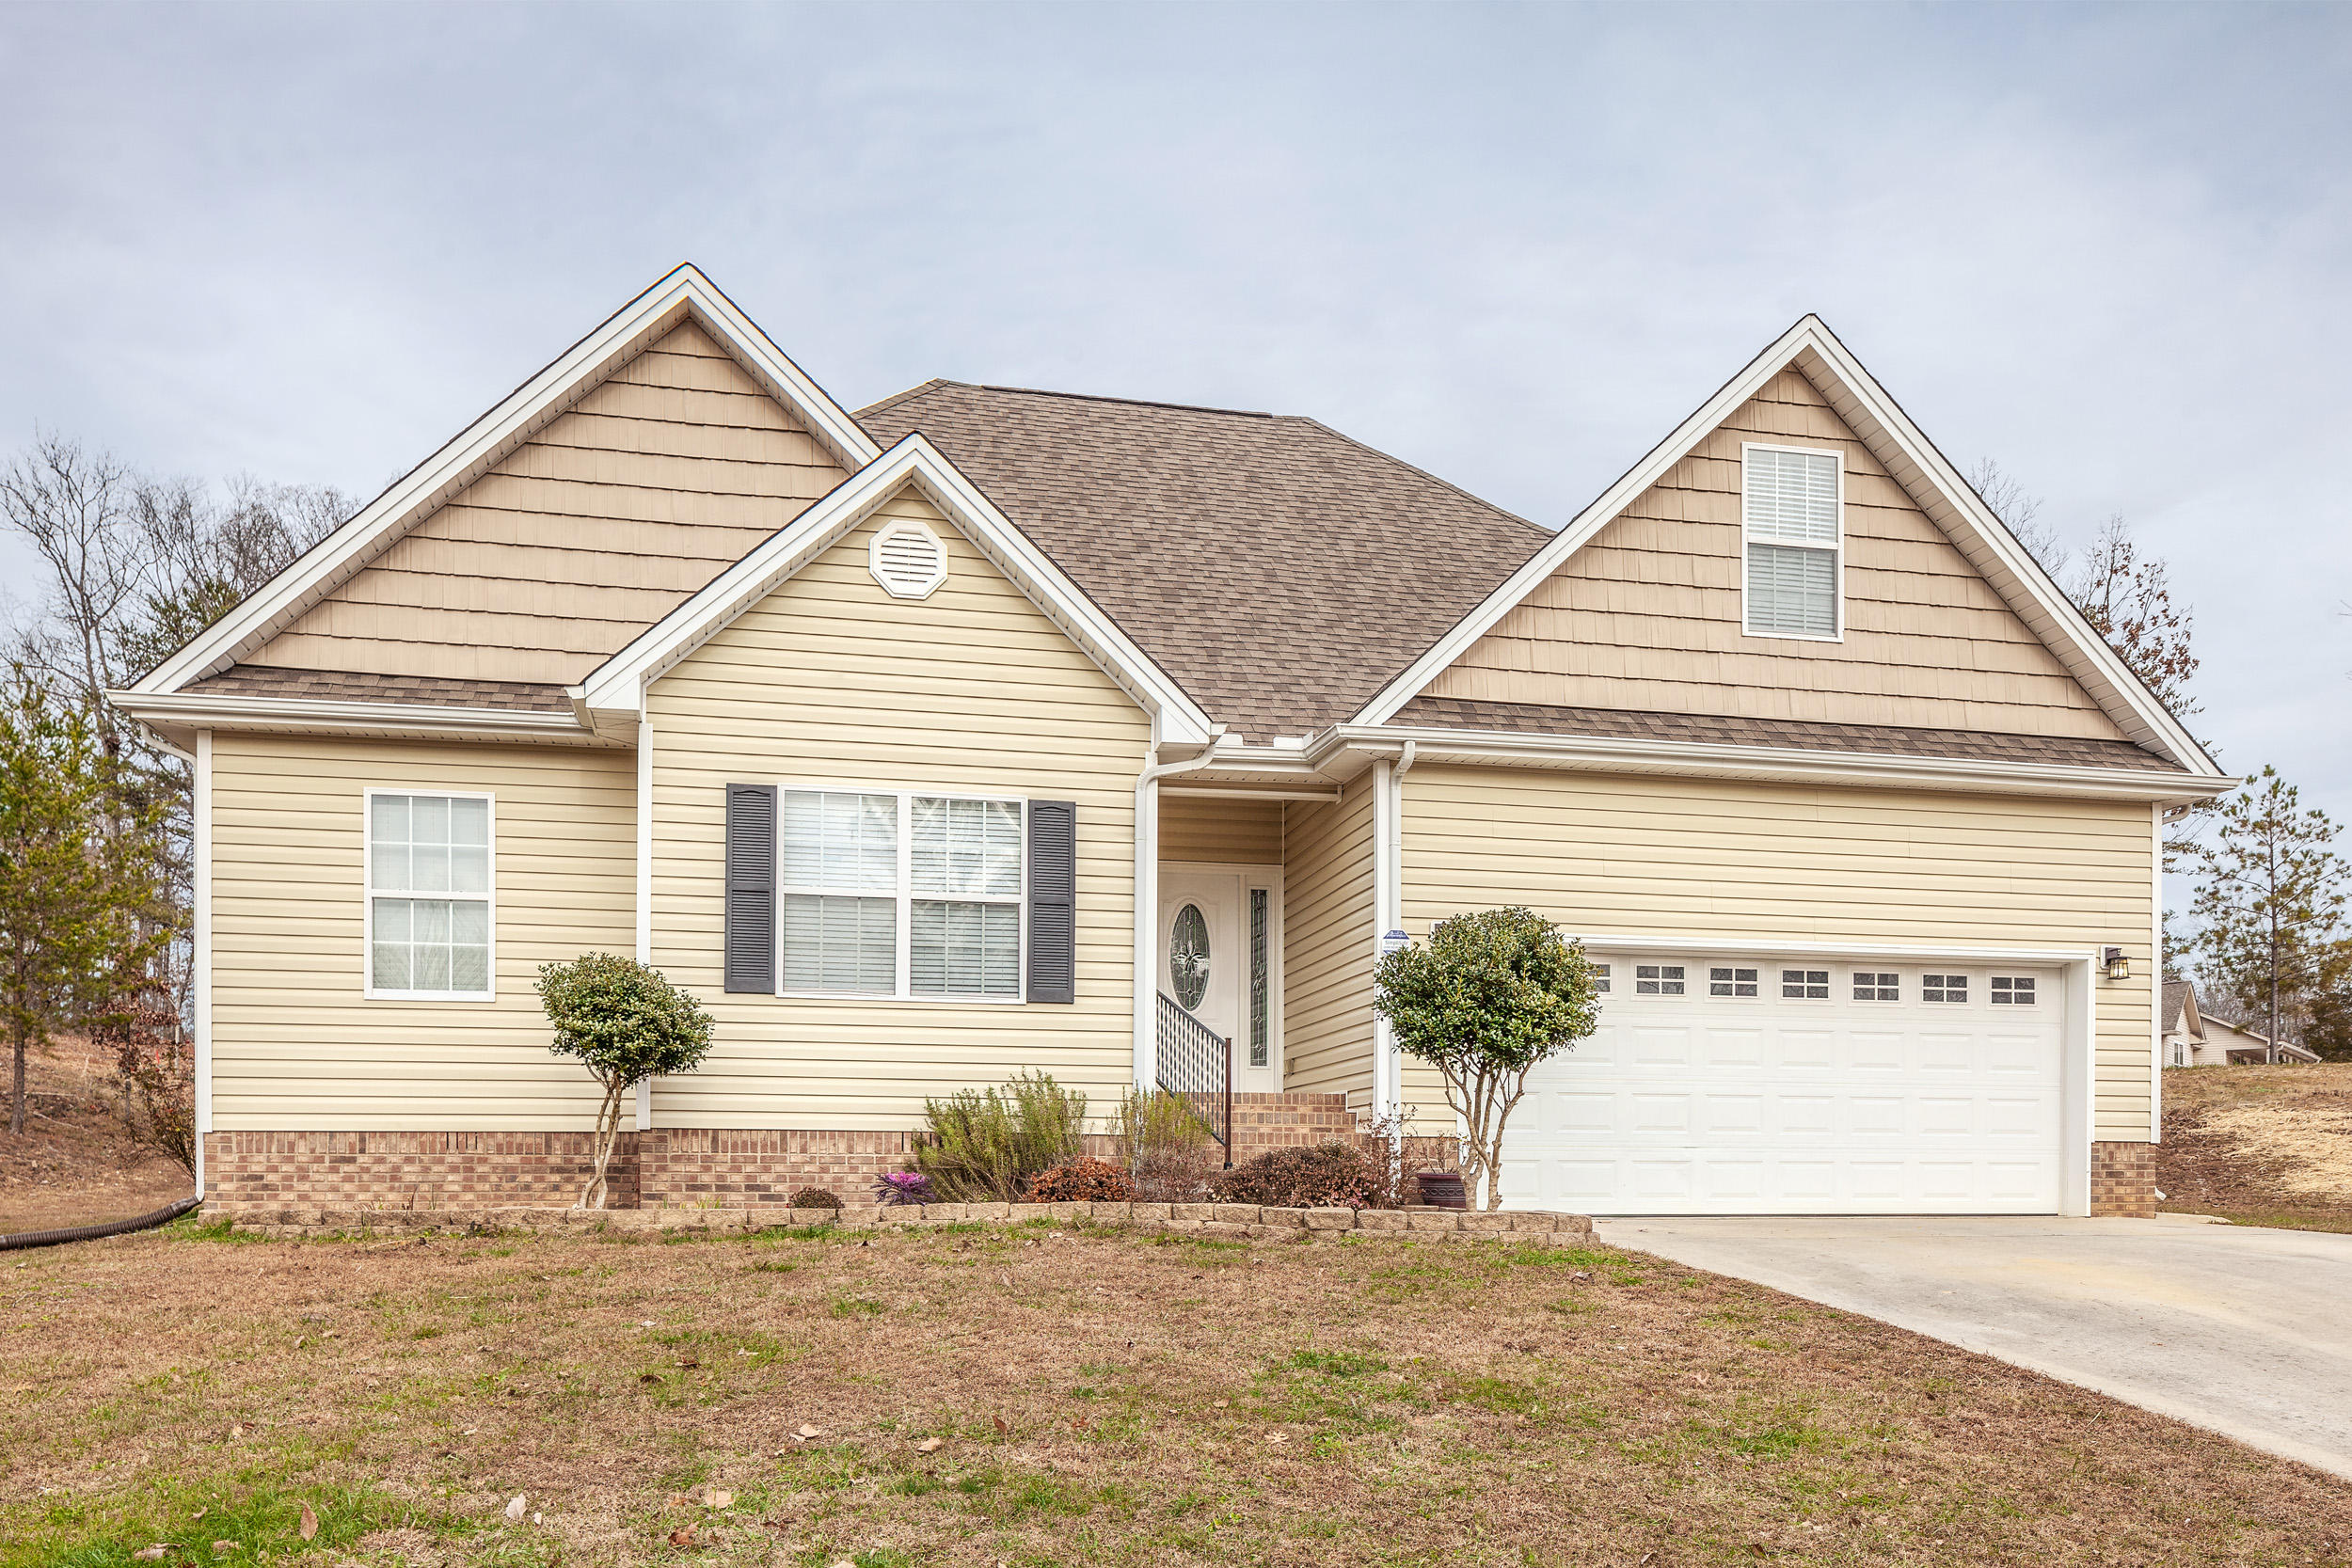 422 William Way, Cleveland, TN 37323